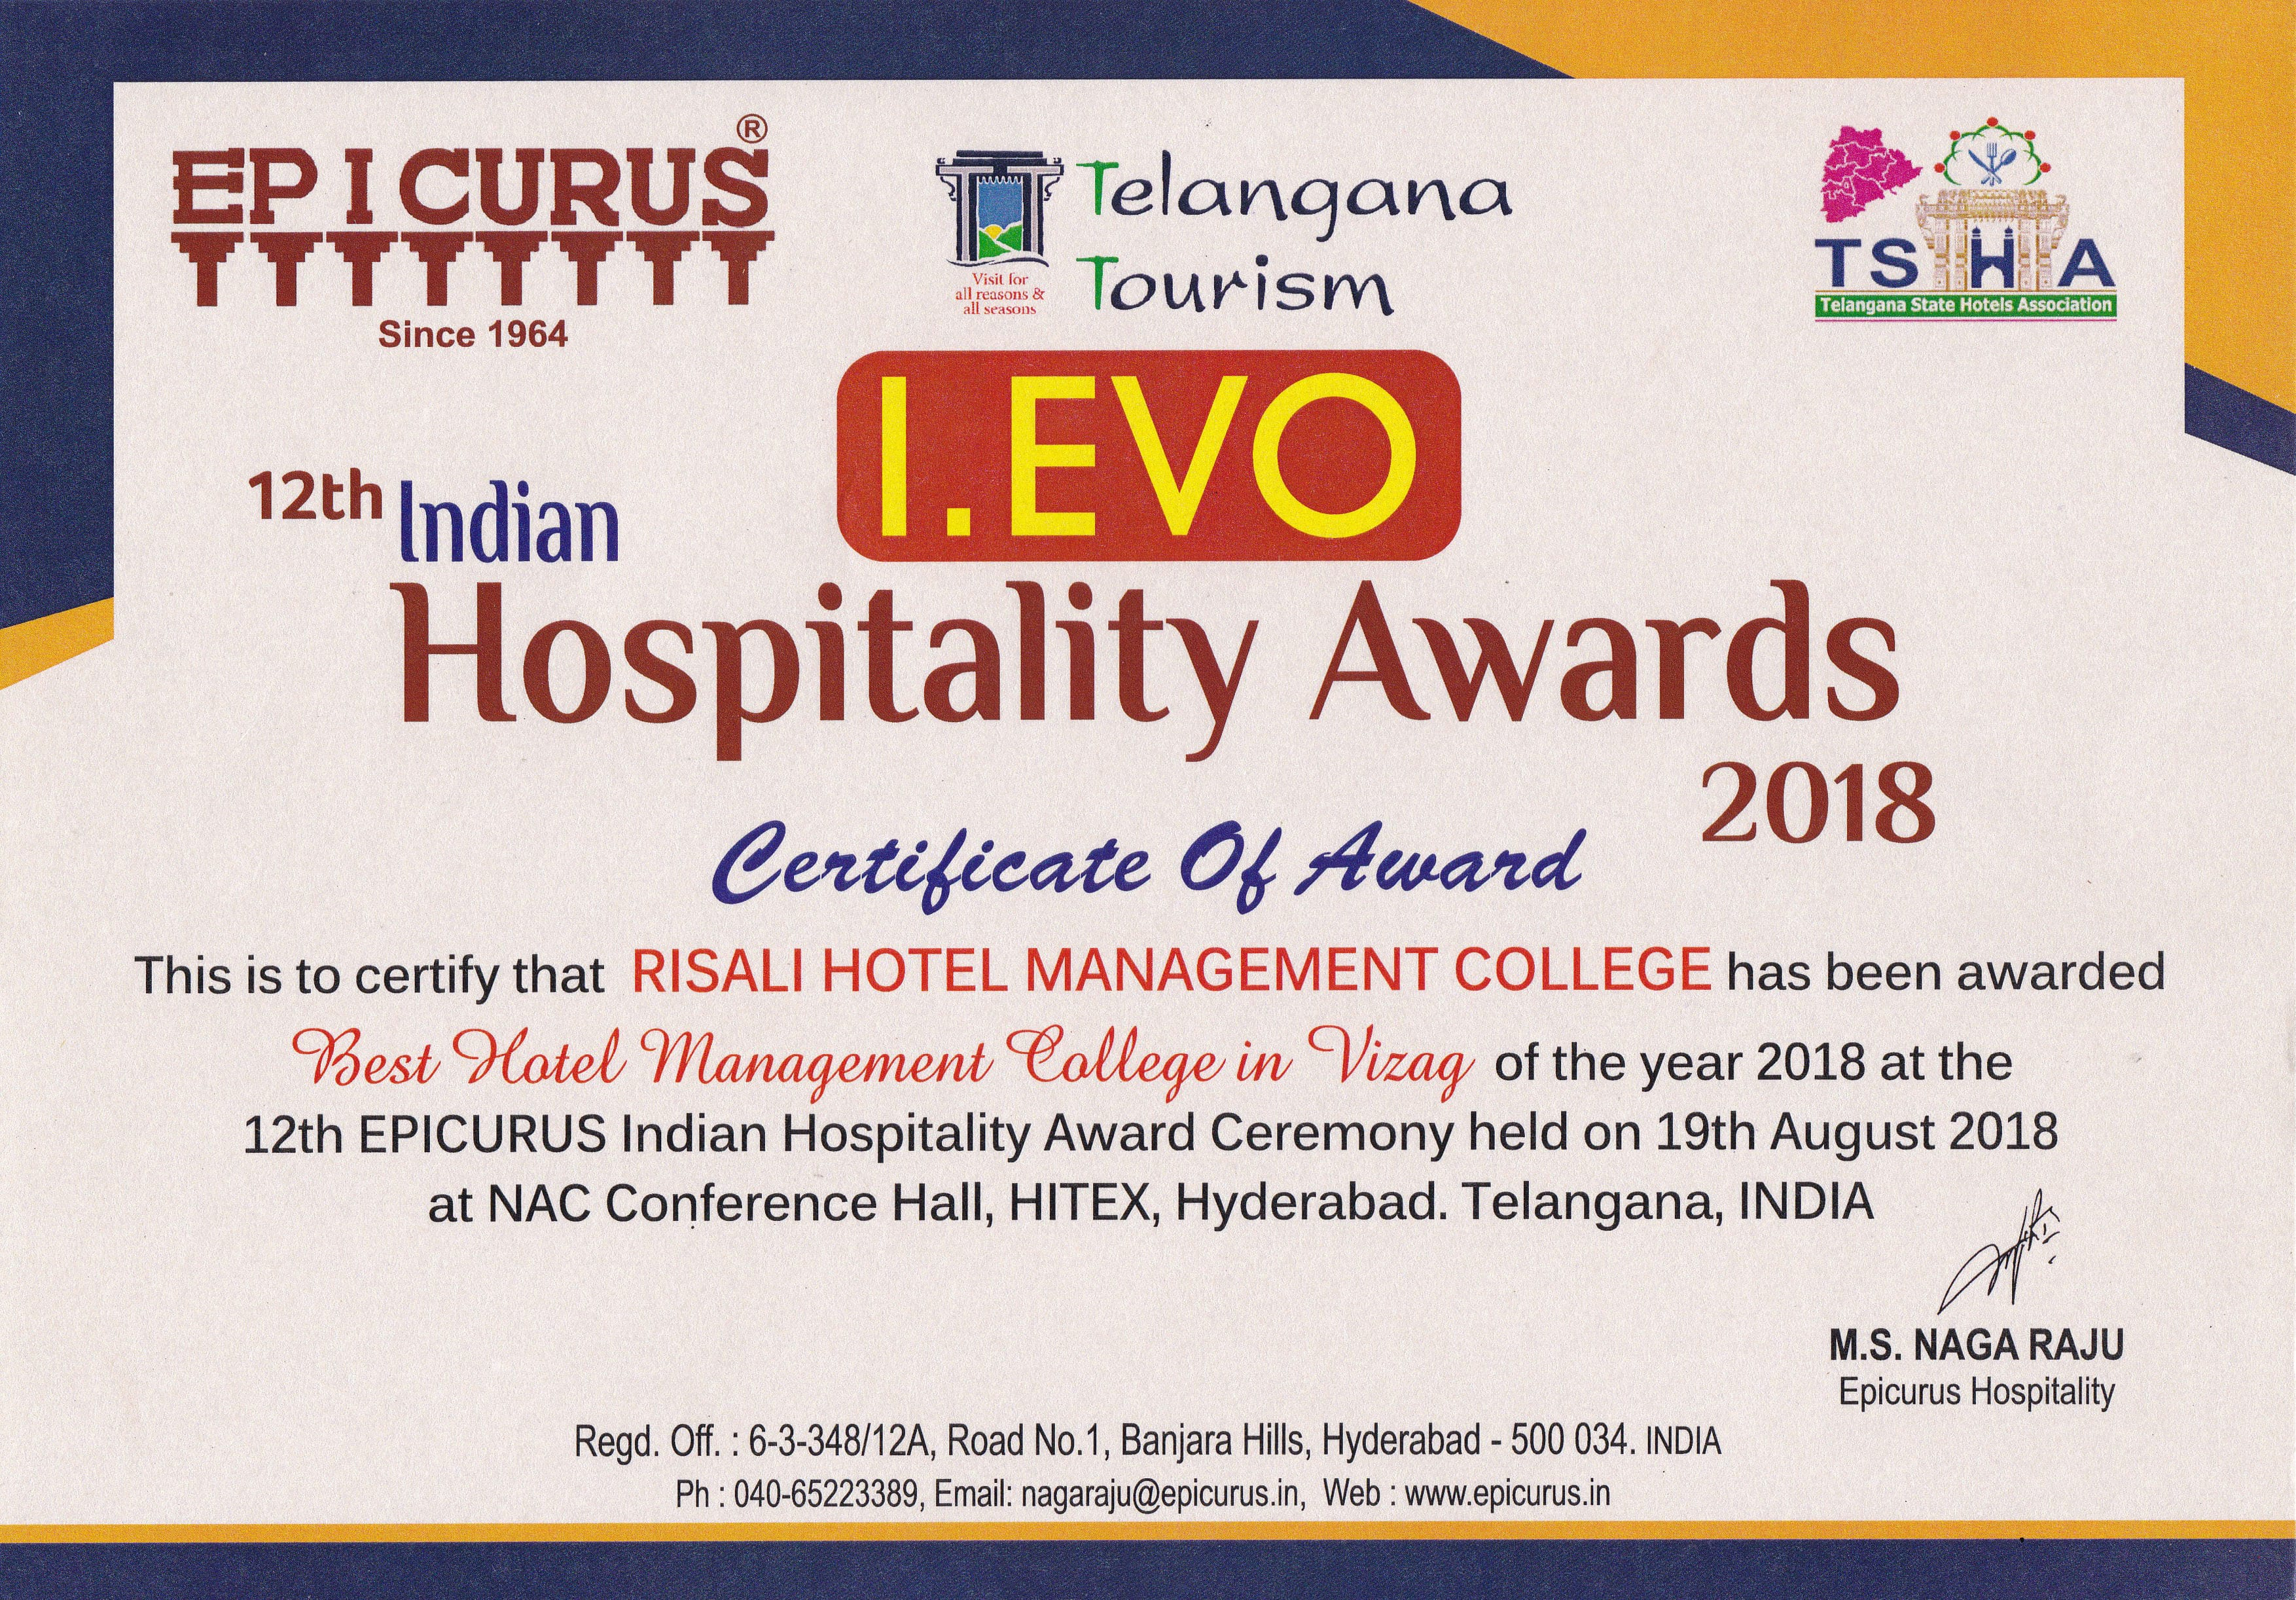 I EVO 12th Indian Hospitality Award for Best Hotel Management College